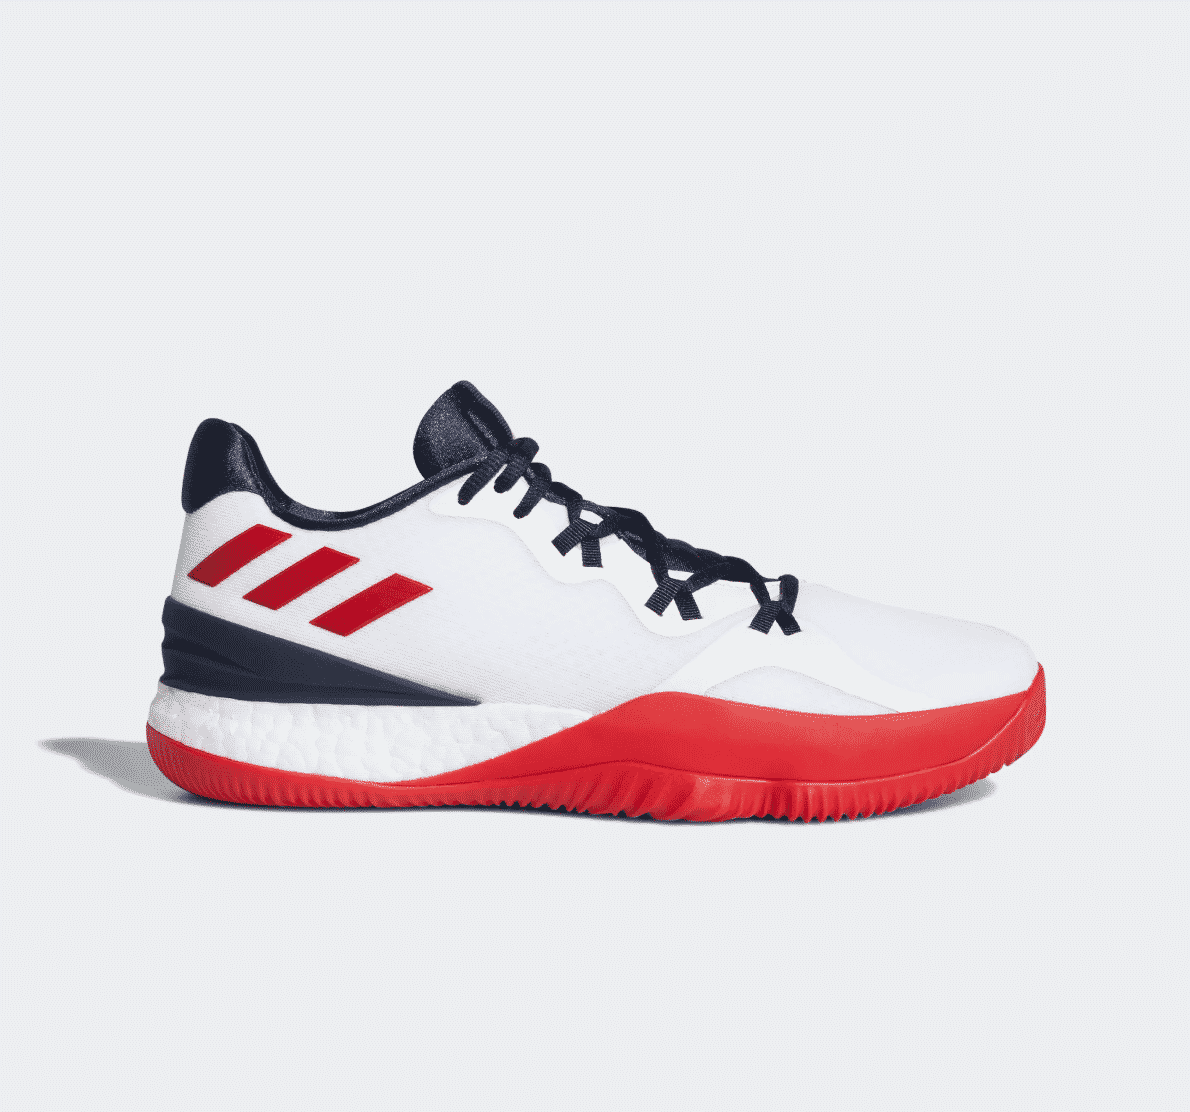 adidas-crazylight-boost-2018-volleypack-2